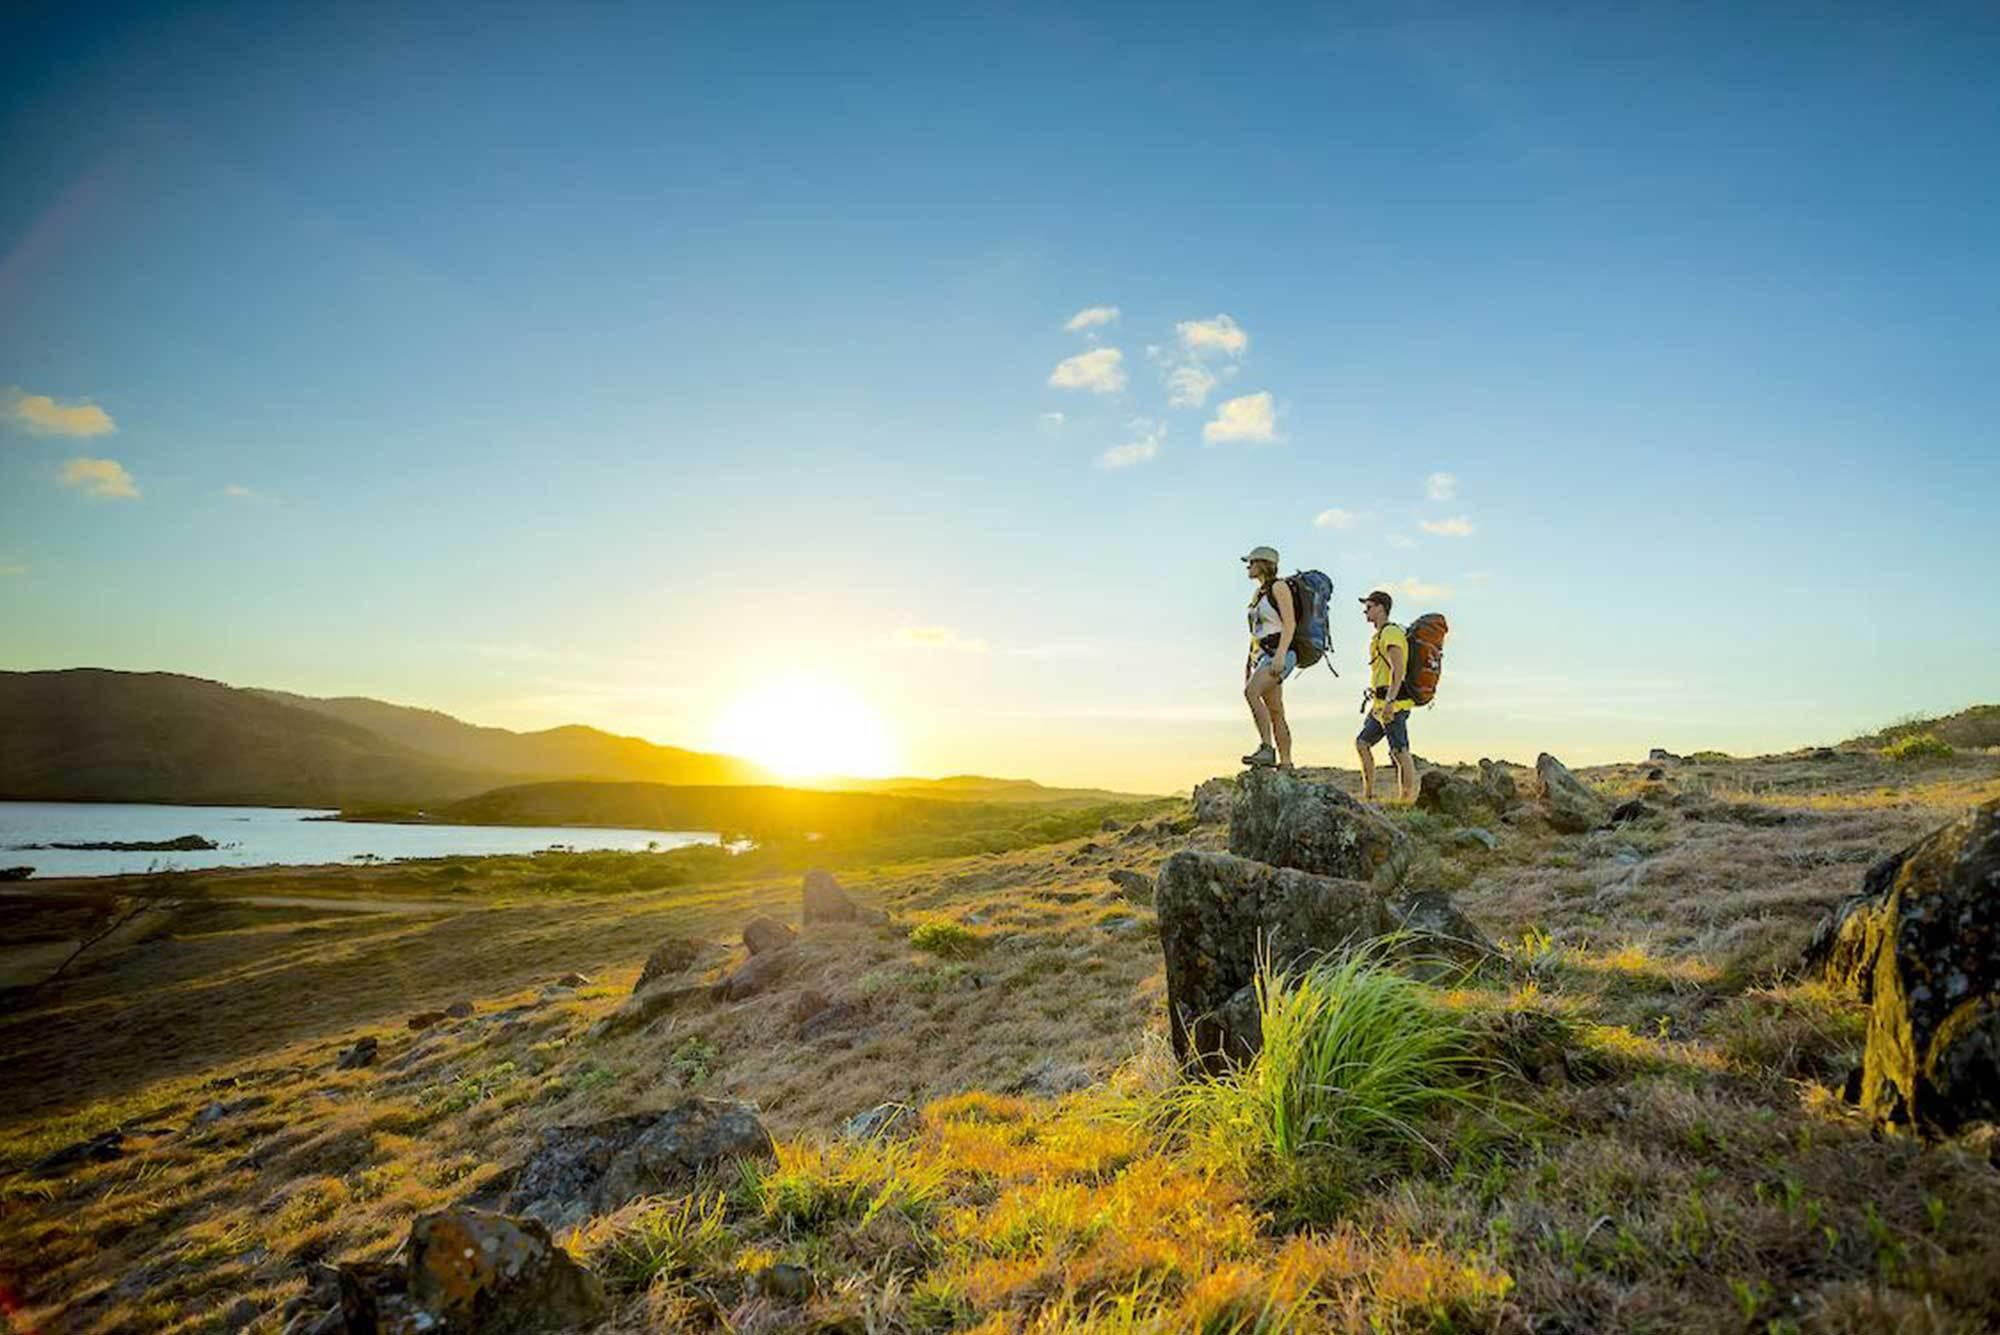 These Cairns hikes are not to be missed